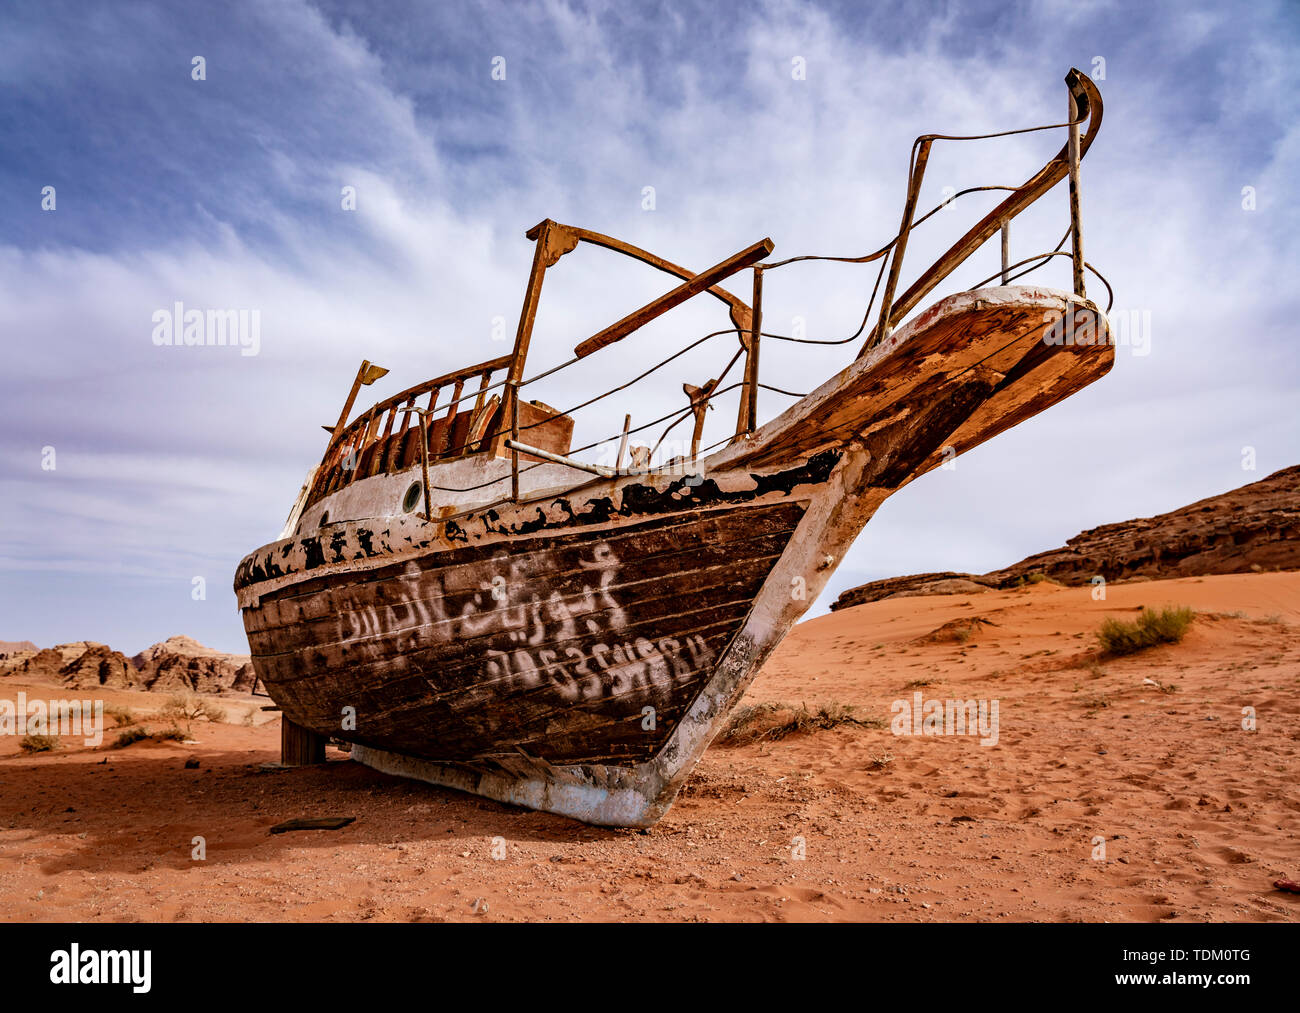 Strange Boat Stuck on Sand Hundres of KM From Nearest Water in Wadi Rum Jordan. Stock Photo